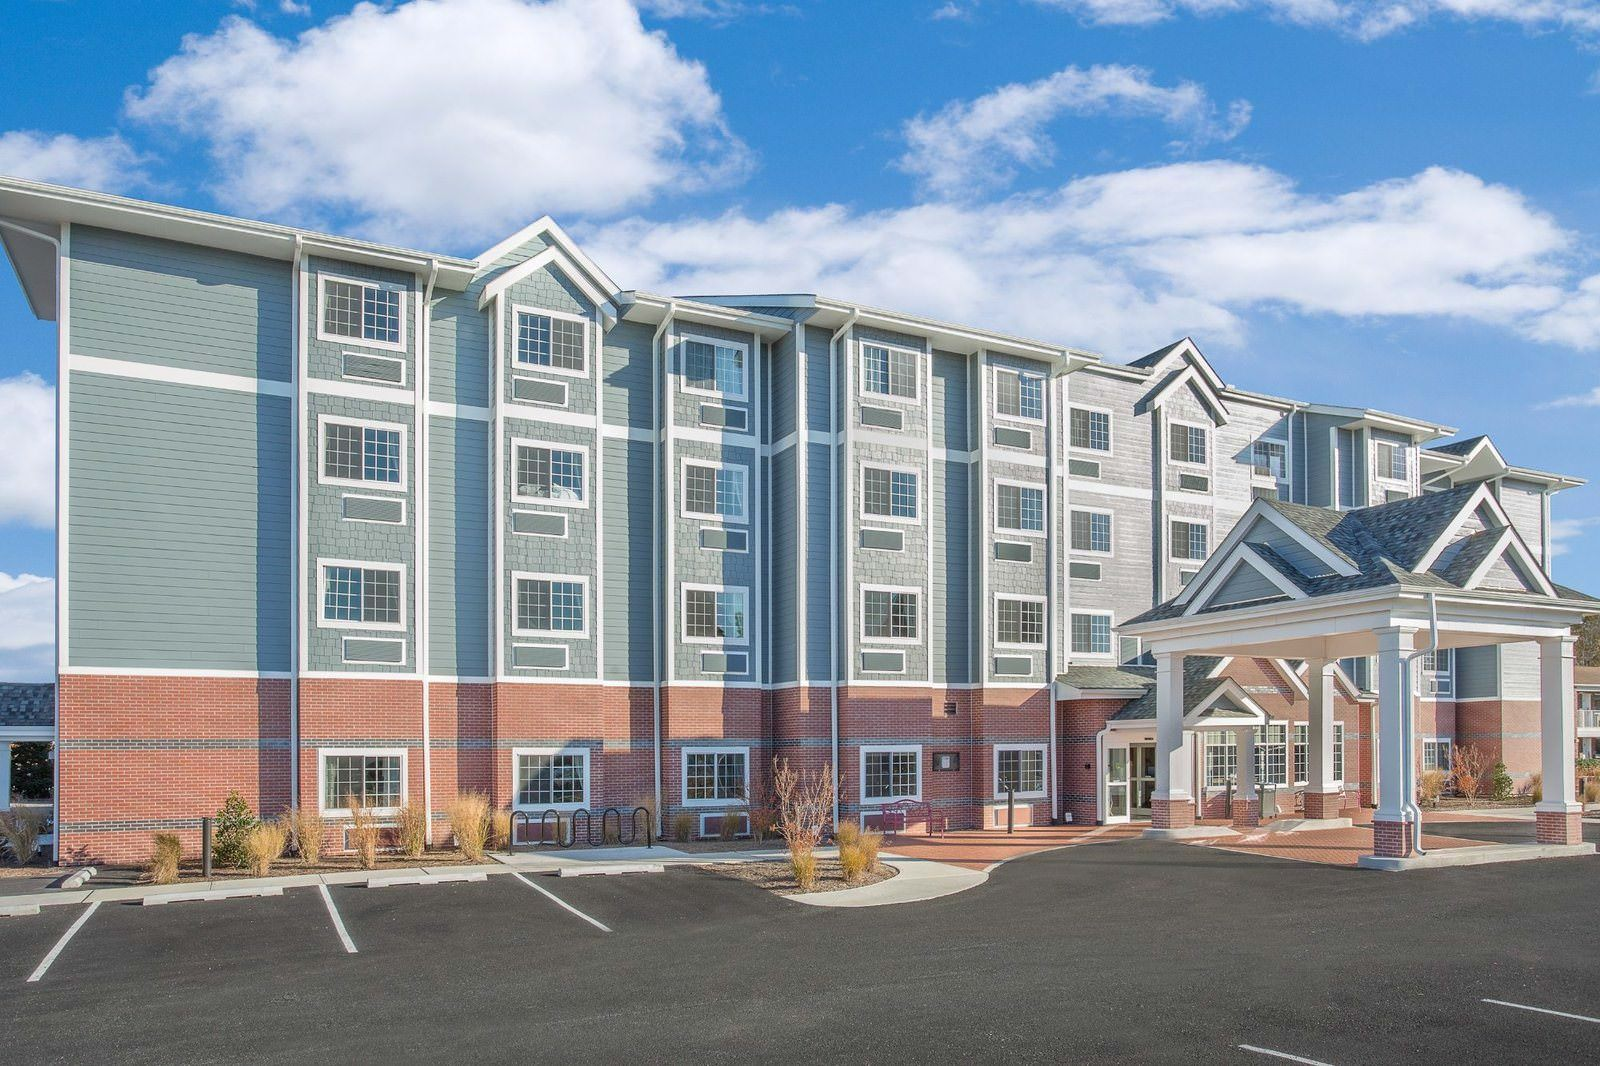 List of the best hotels in maryland usa from cheap to - 2 bedroom suites in ocean city md ...